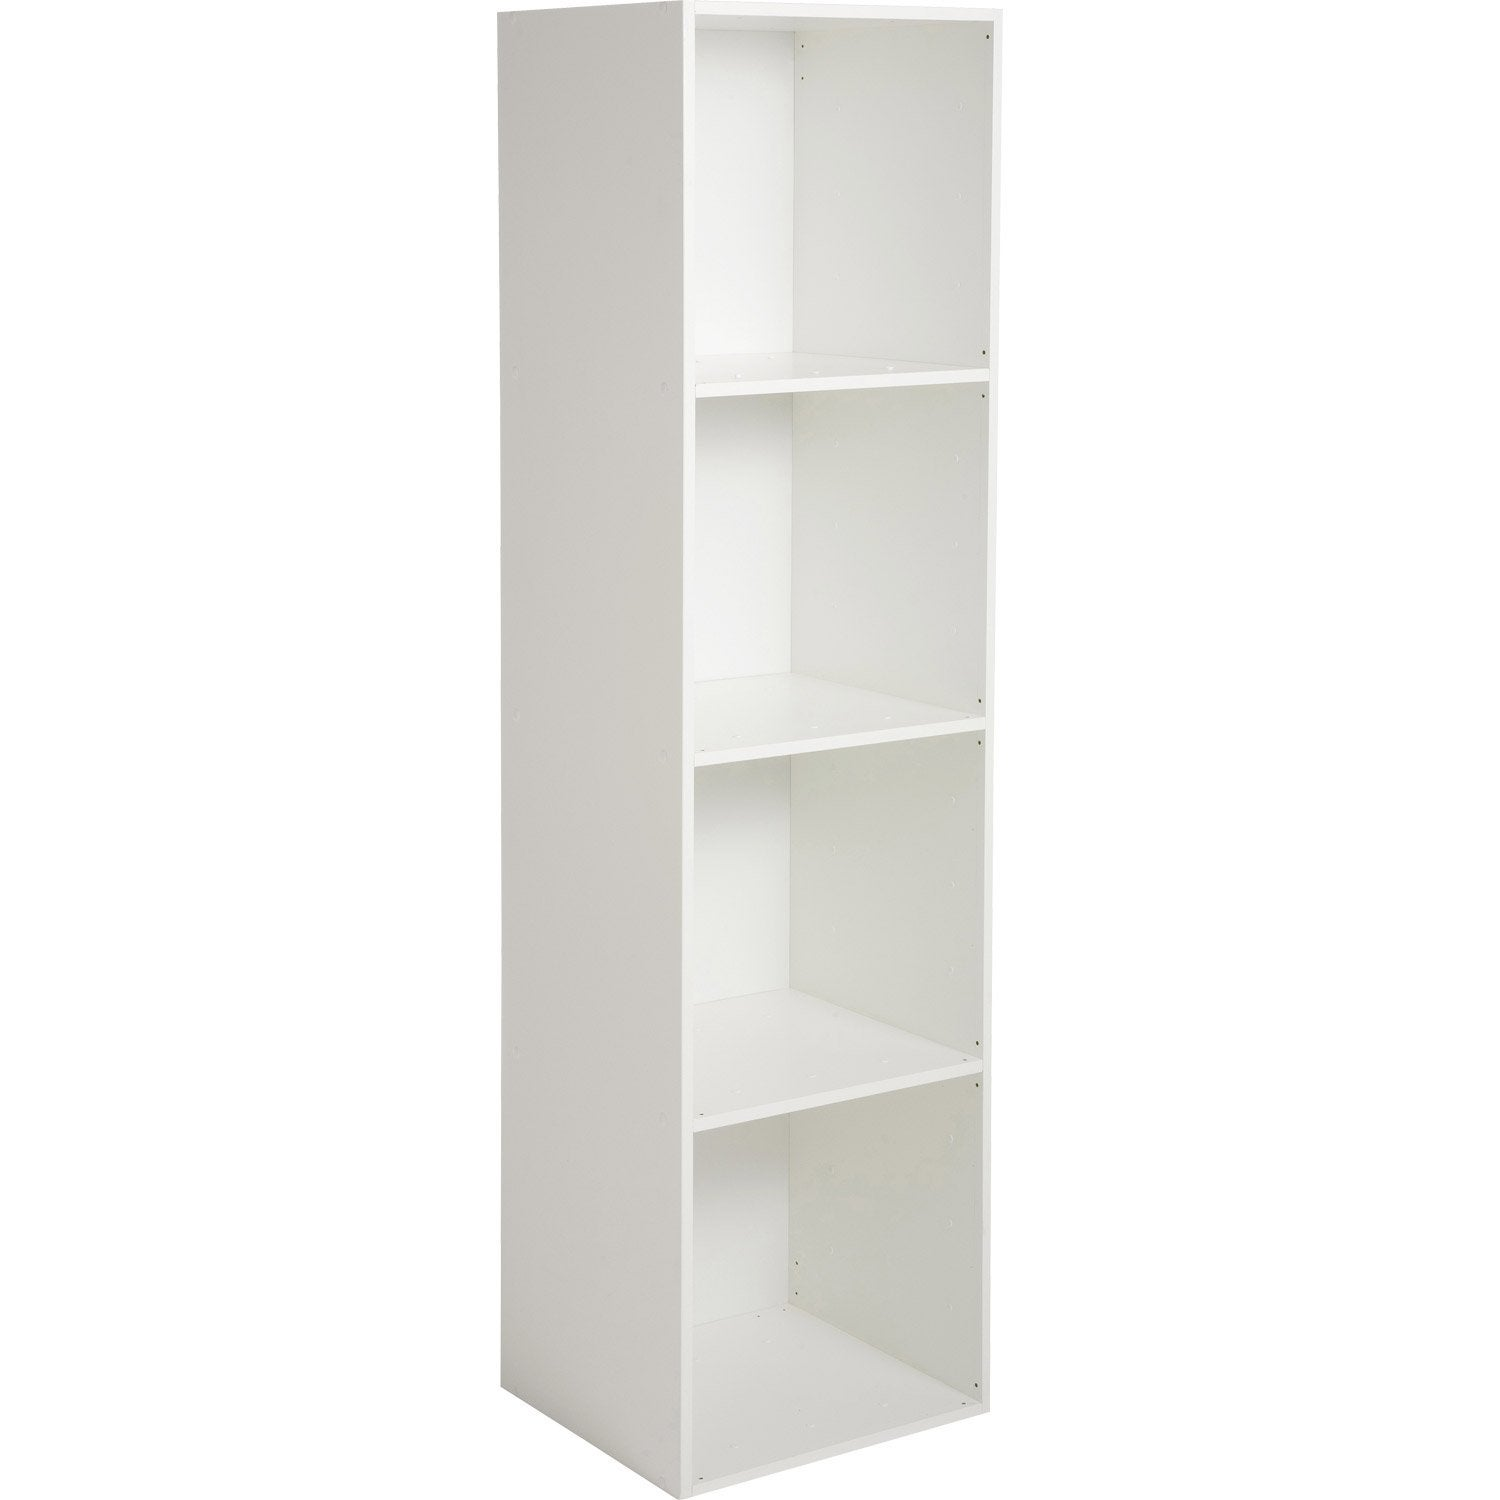 Etag re 4 cases multikaz blanc x x cm leroy merlin - Etagere et casier a chaussures ...